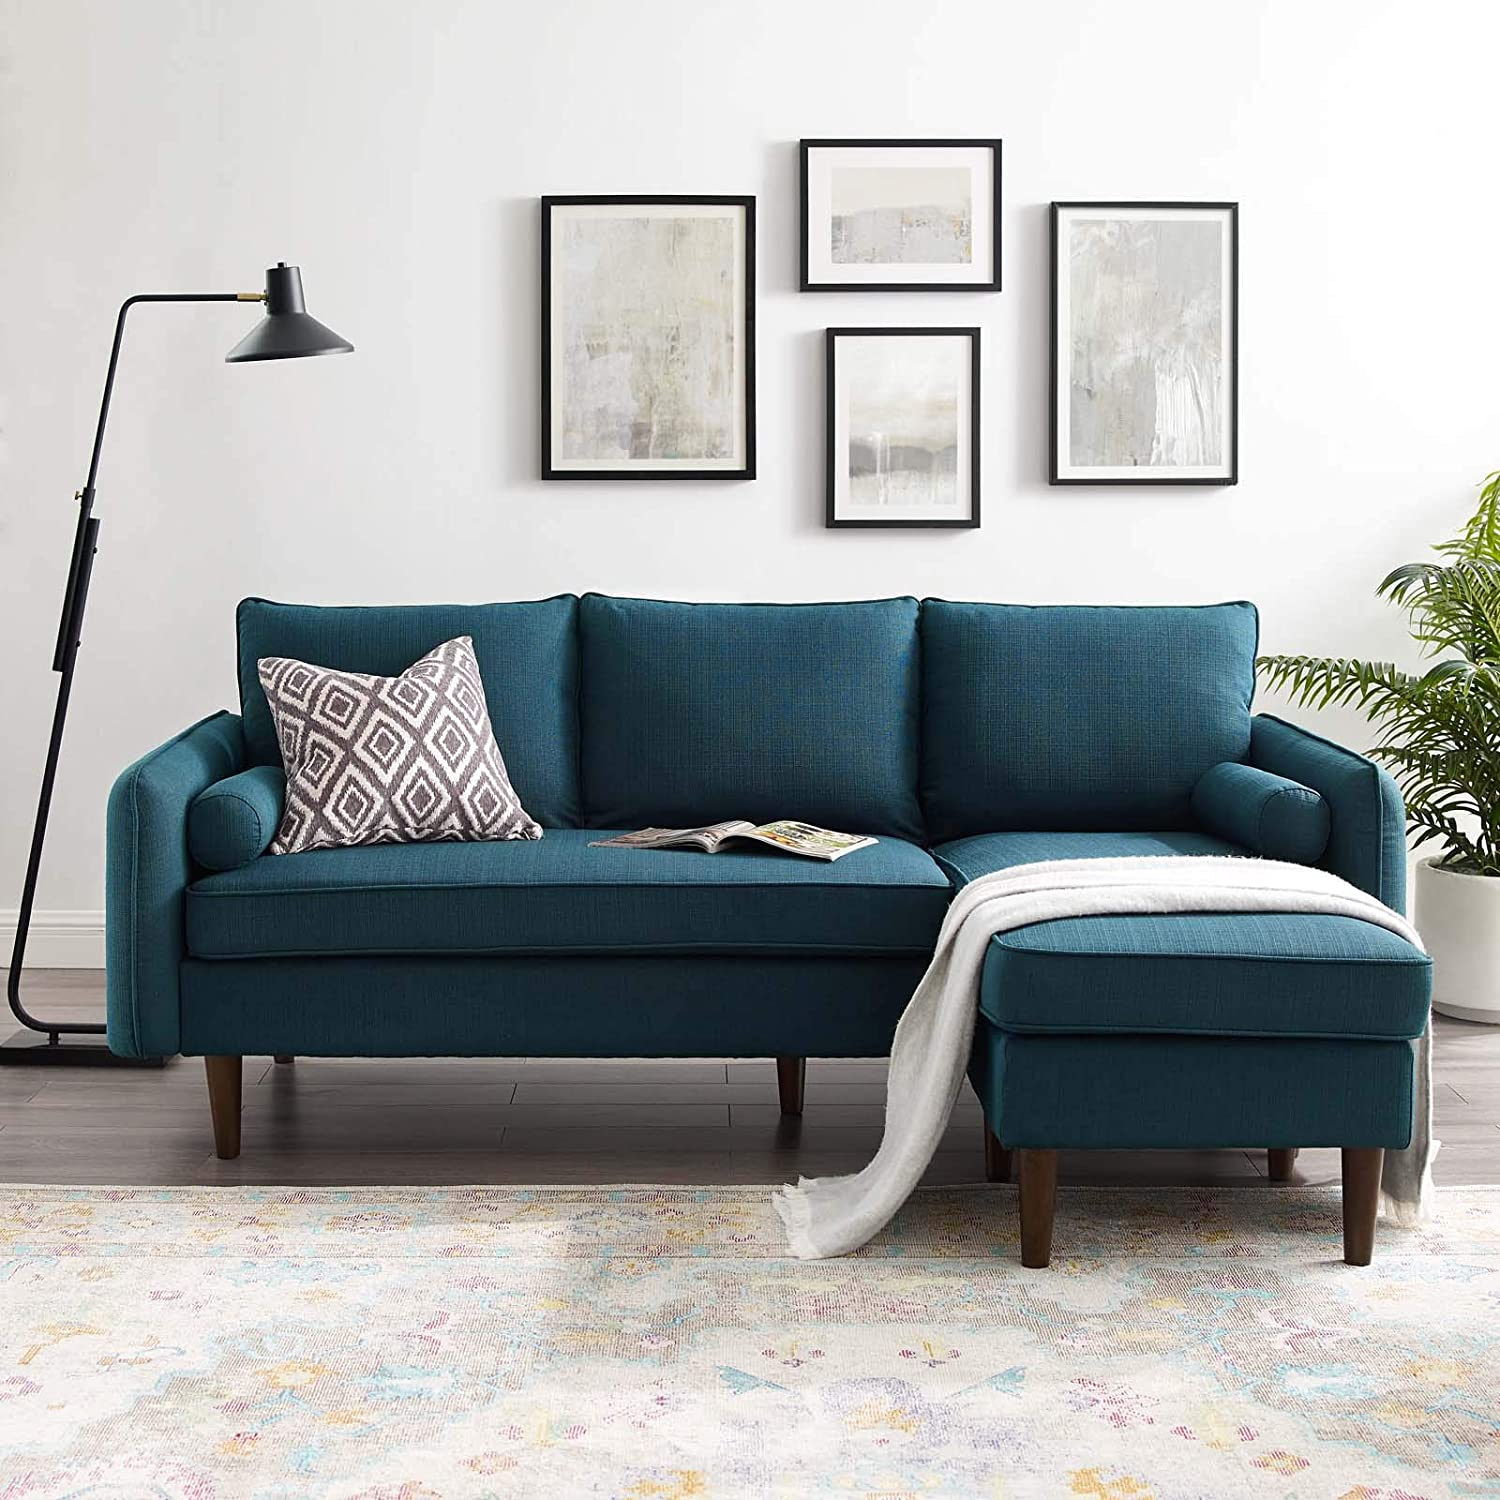 Modway Revive Modern Upholstered Fabric Right or Left Sectional Sofa Couch, Azure